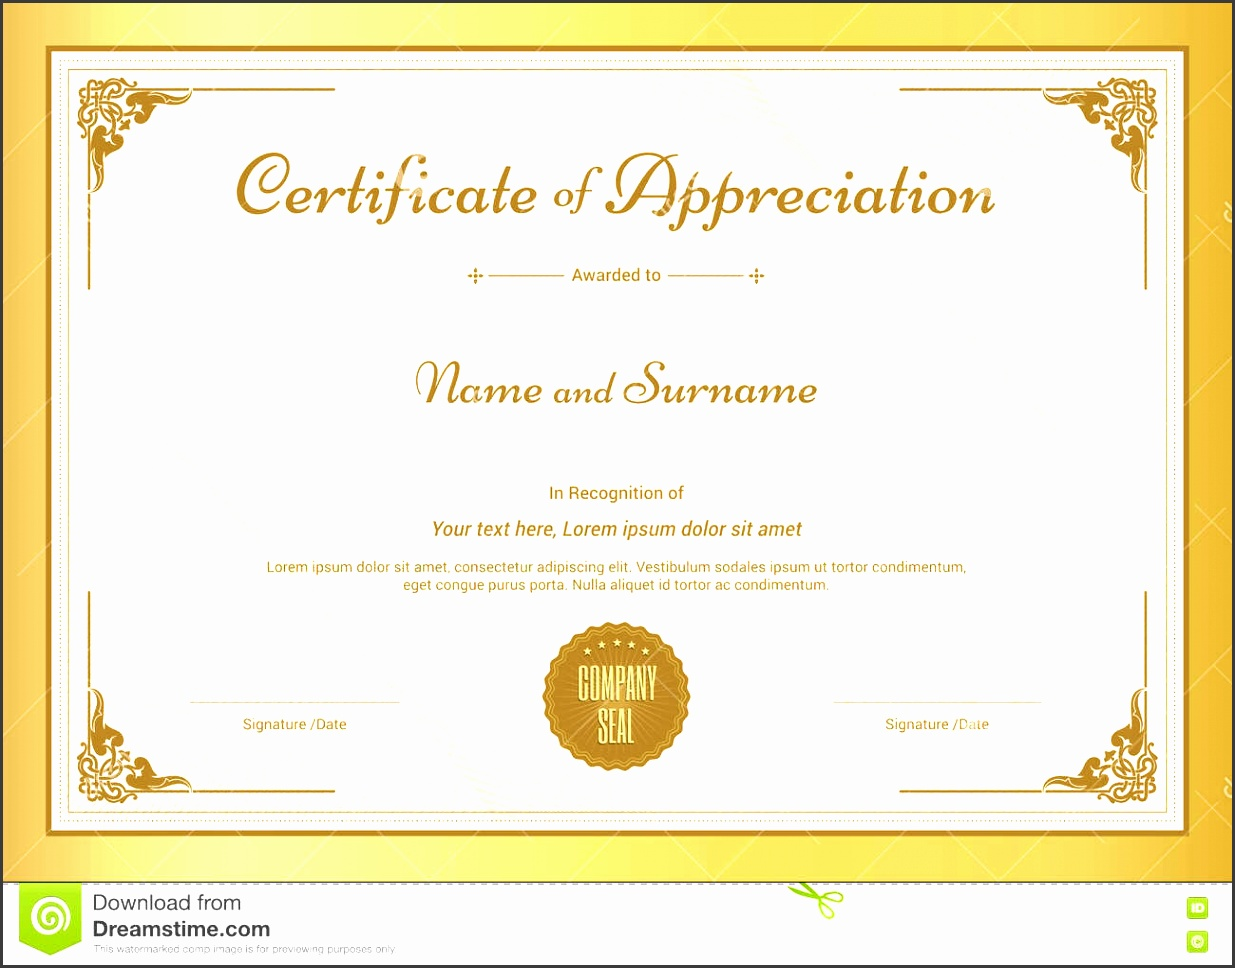 7 download free certificate of appreciation template for Free certificate of appreciation template downloads